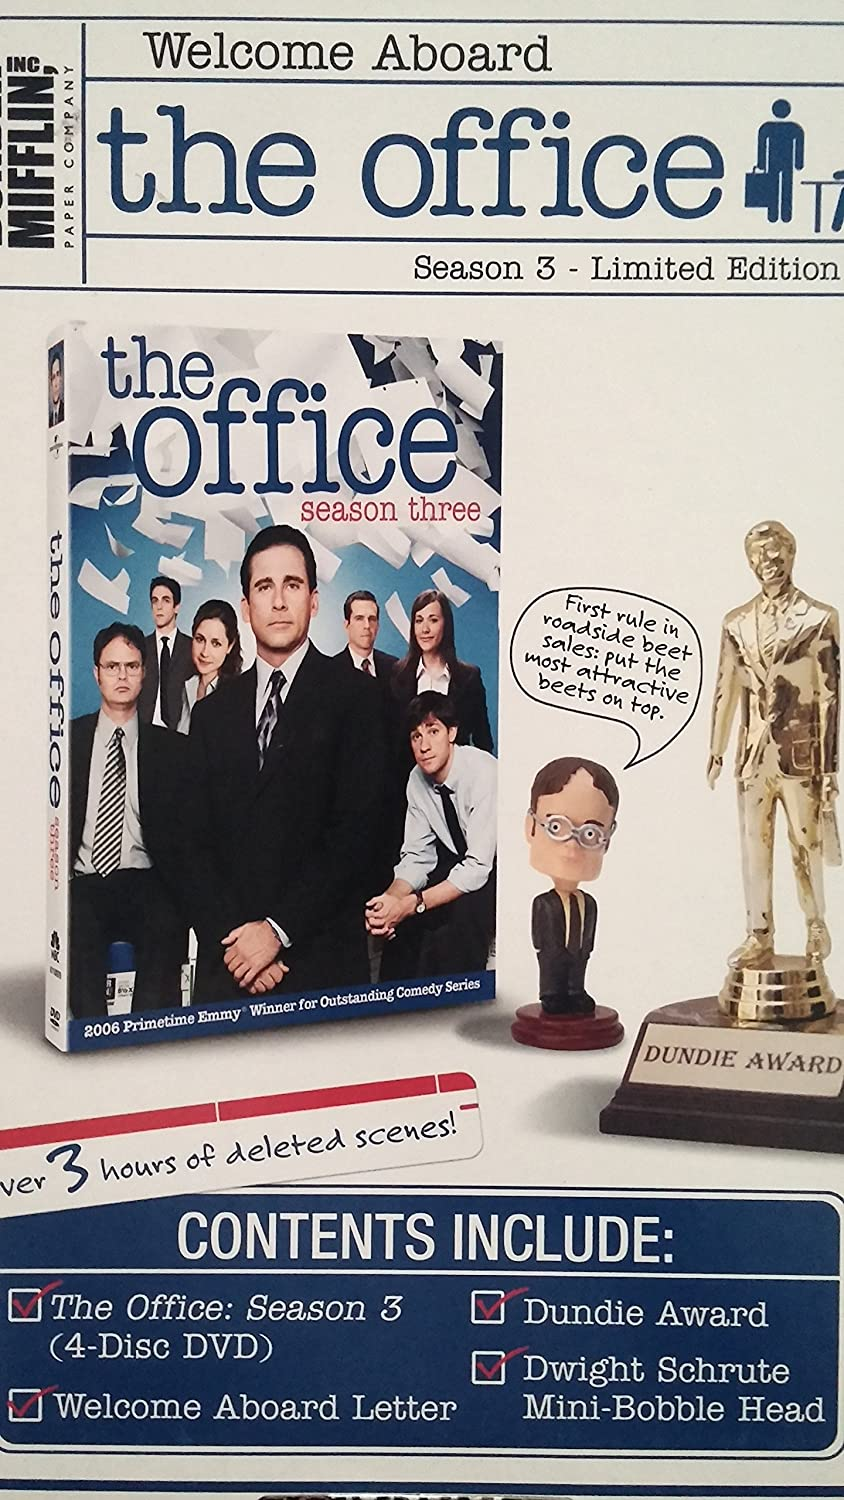 The Office Season   Limited Edition W Dundie Award  Dwight